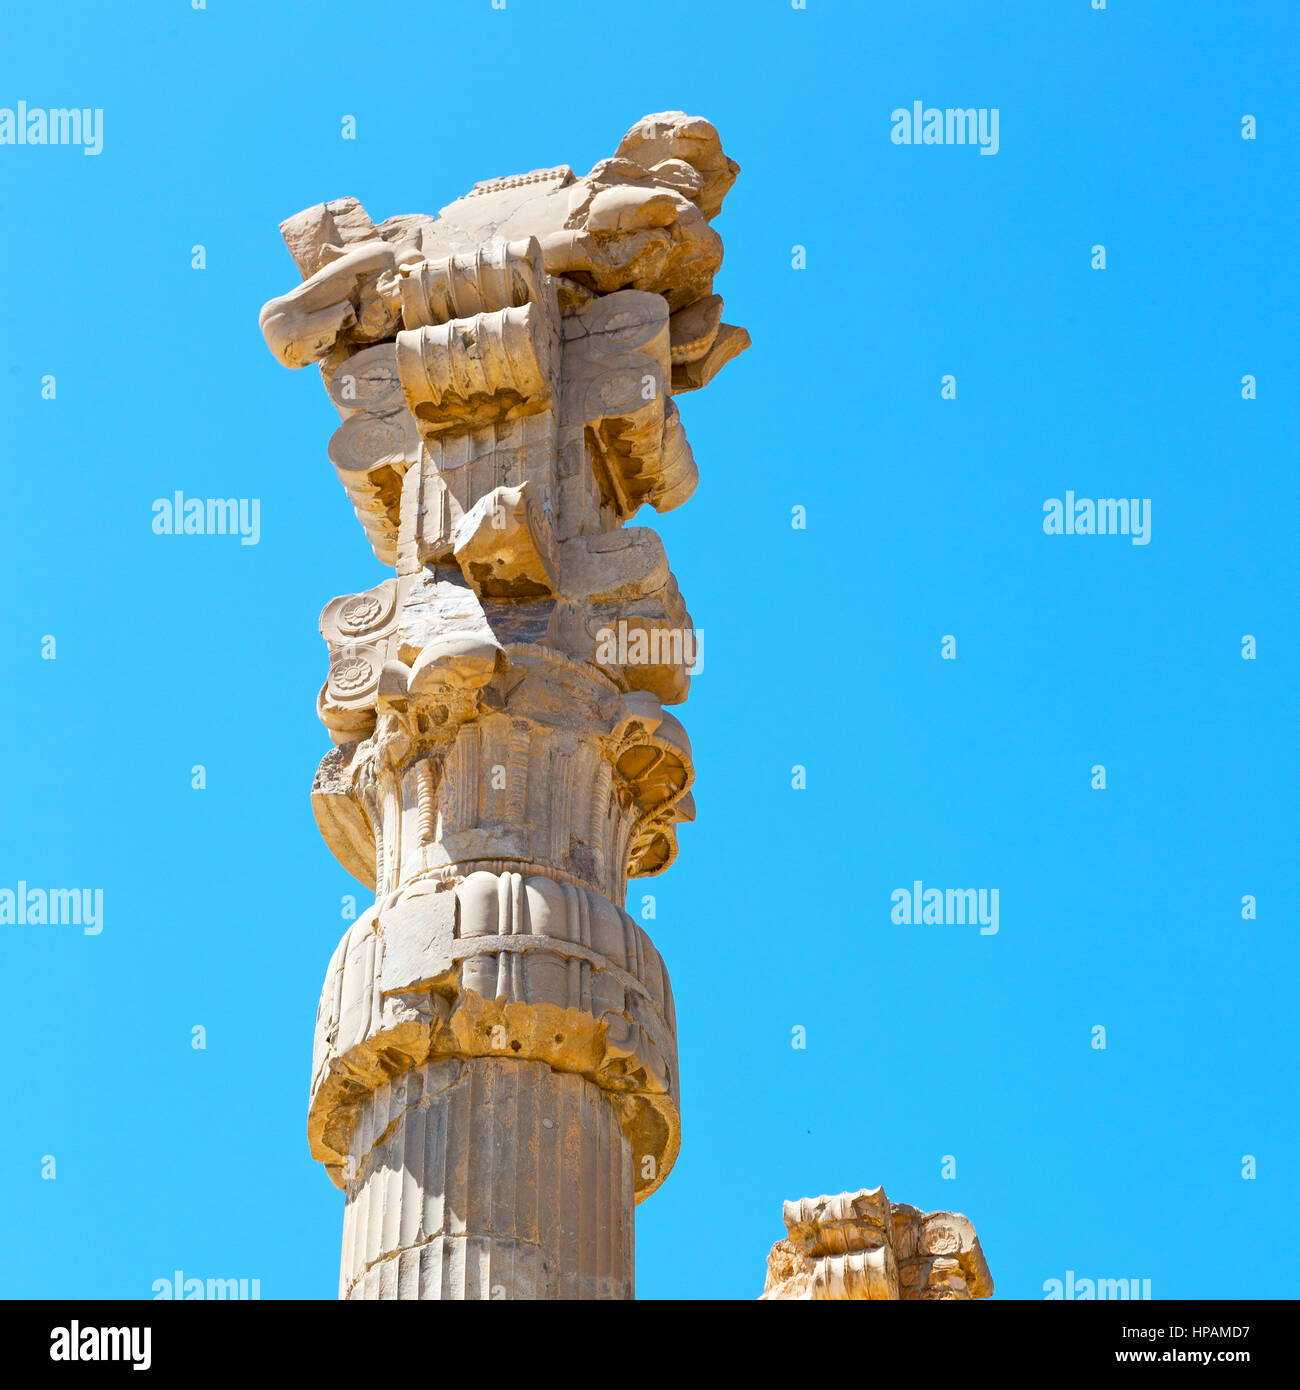 Blur In Iran Persepolis The Old Ruins Historical Destination Stock Photo Alamy